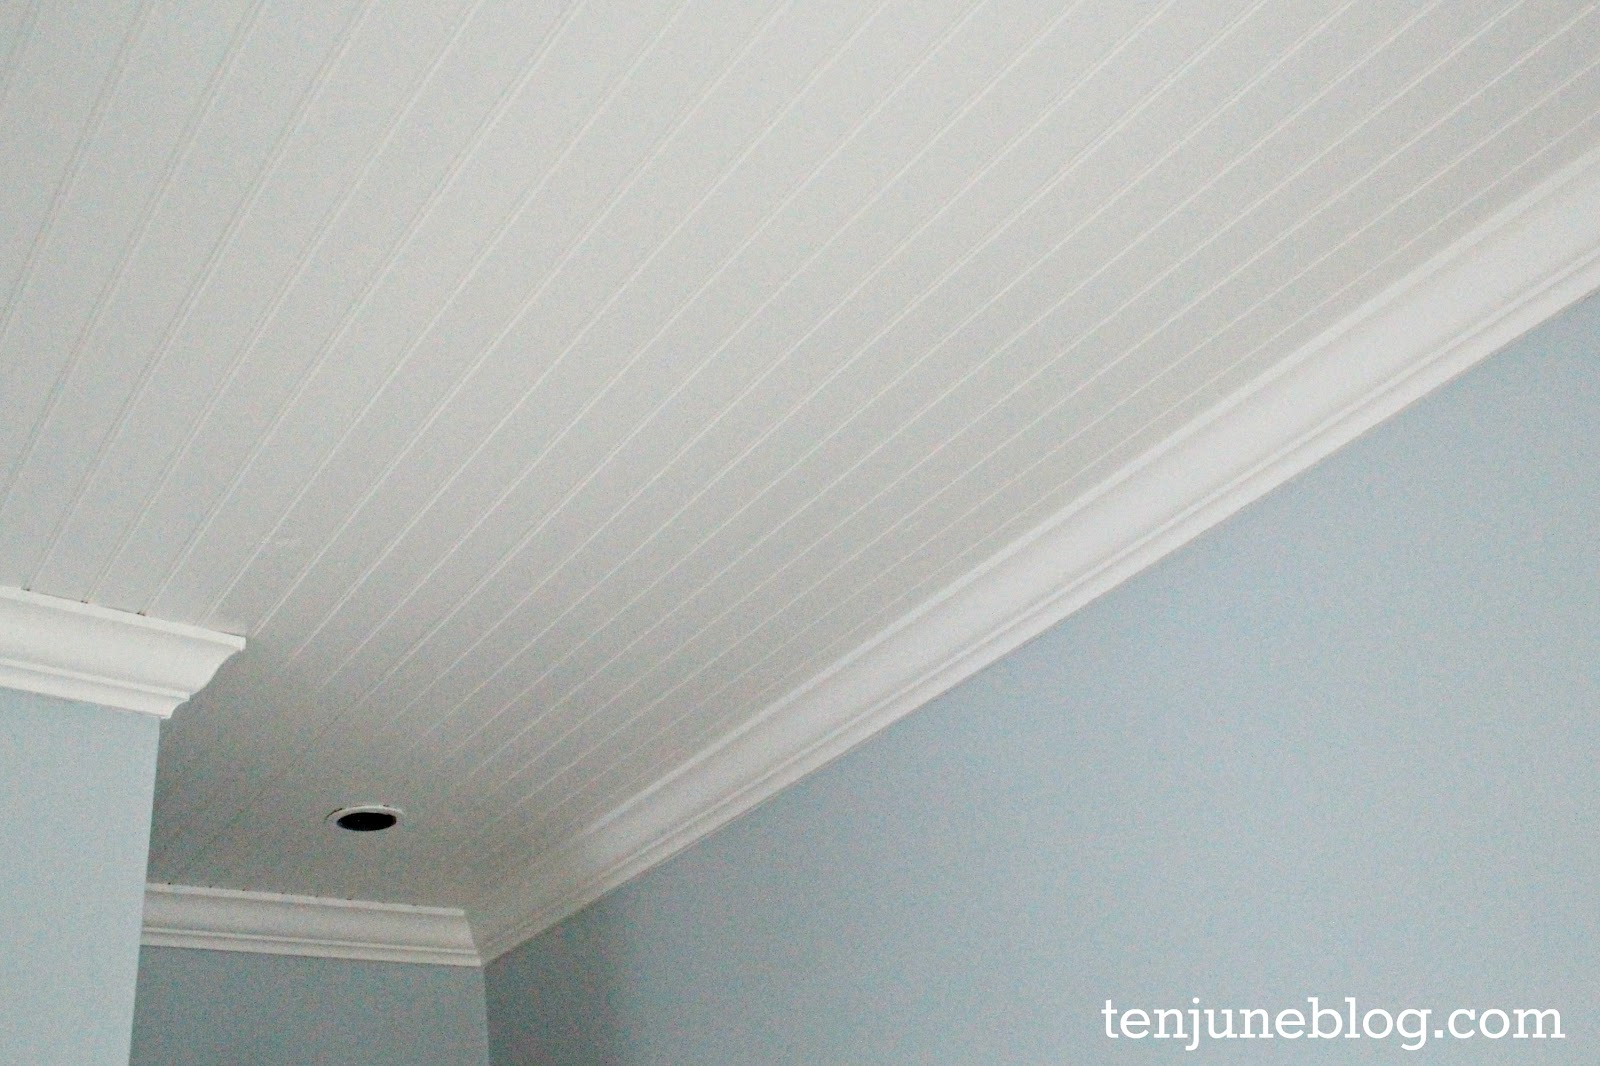 Sherwin Williams Ceiling White Flat Hbm Blog